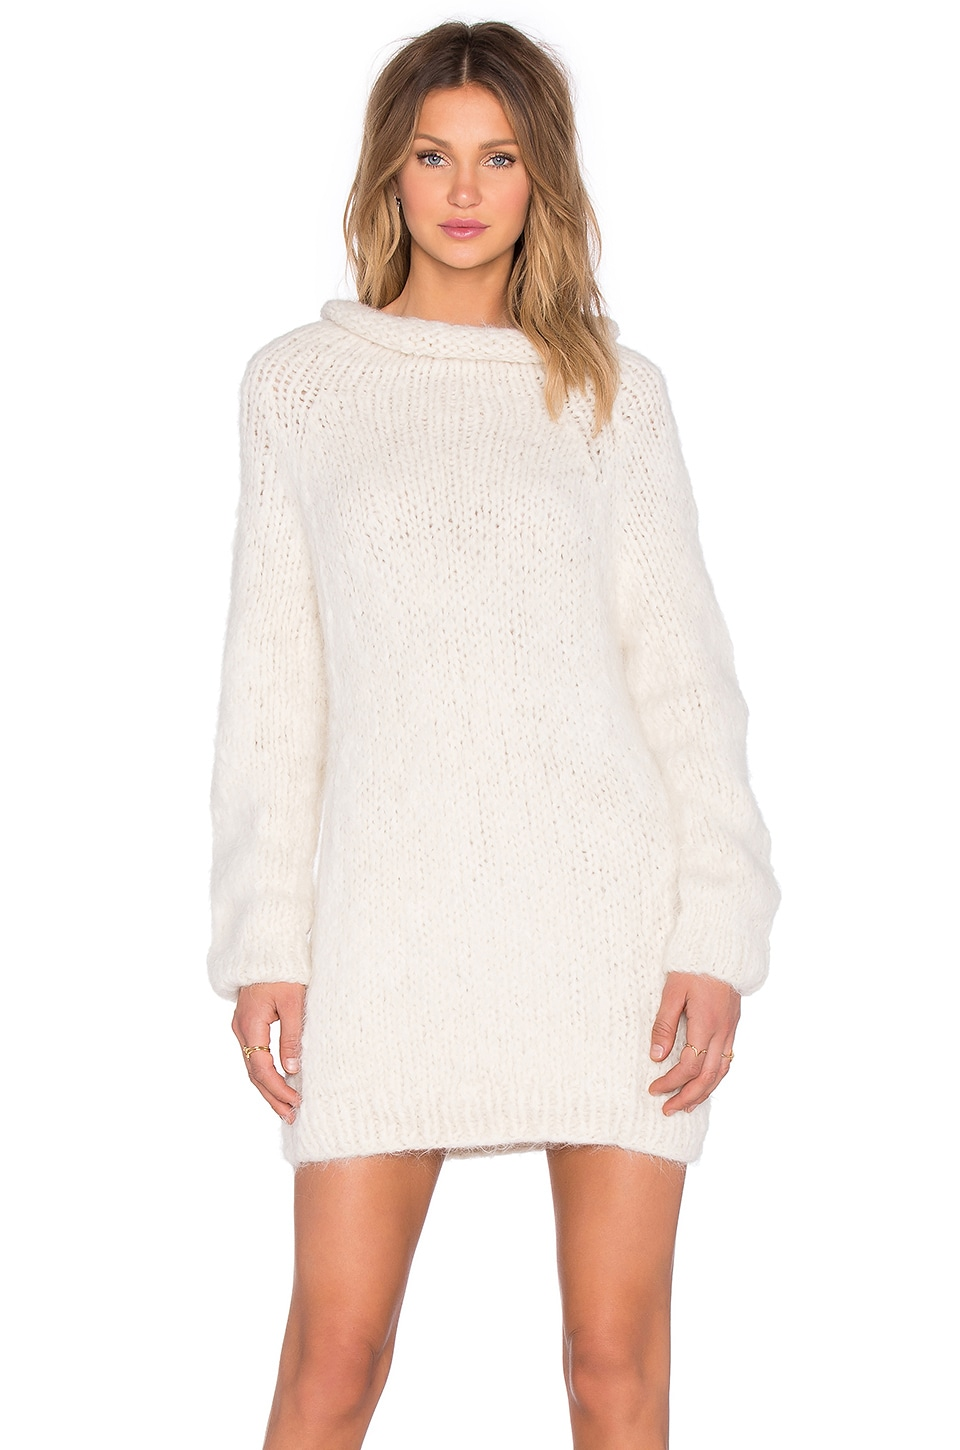 AYNI Anona Oversized Sweater Dress in Off White